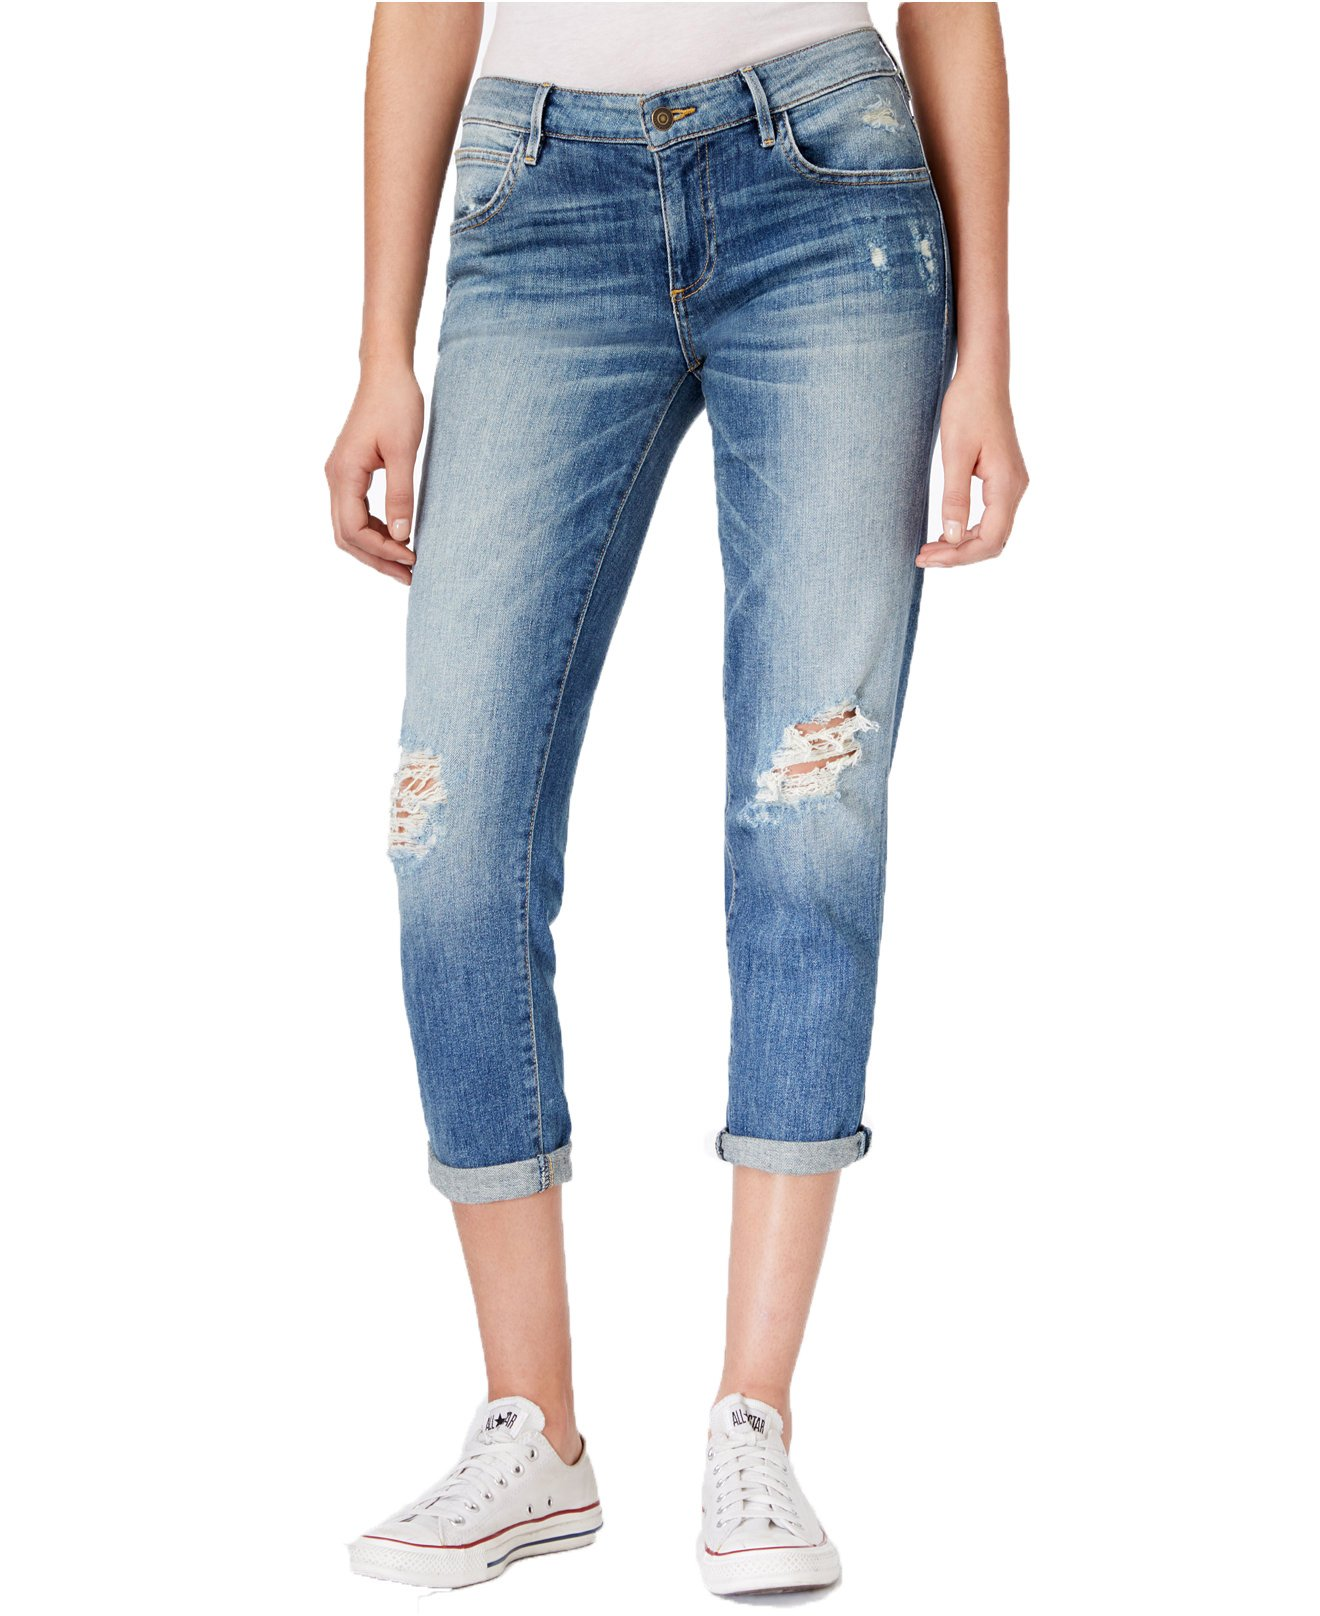 GUESS Women's Tomboy Ripped Cropped Jeans (29, Inkwell Destroy Wash)